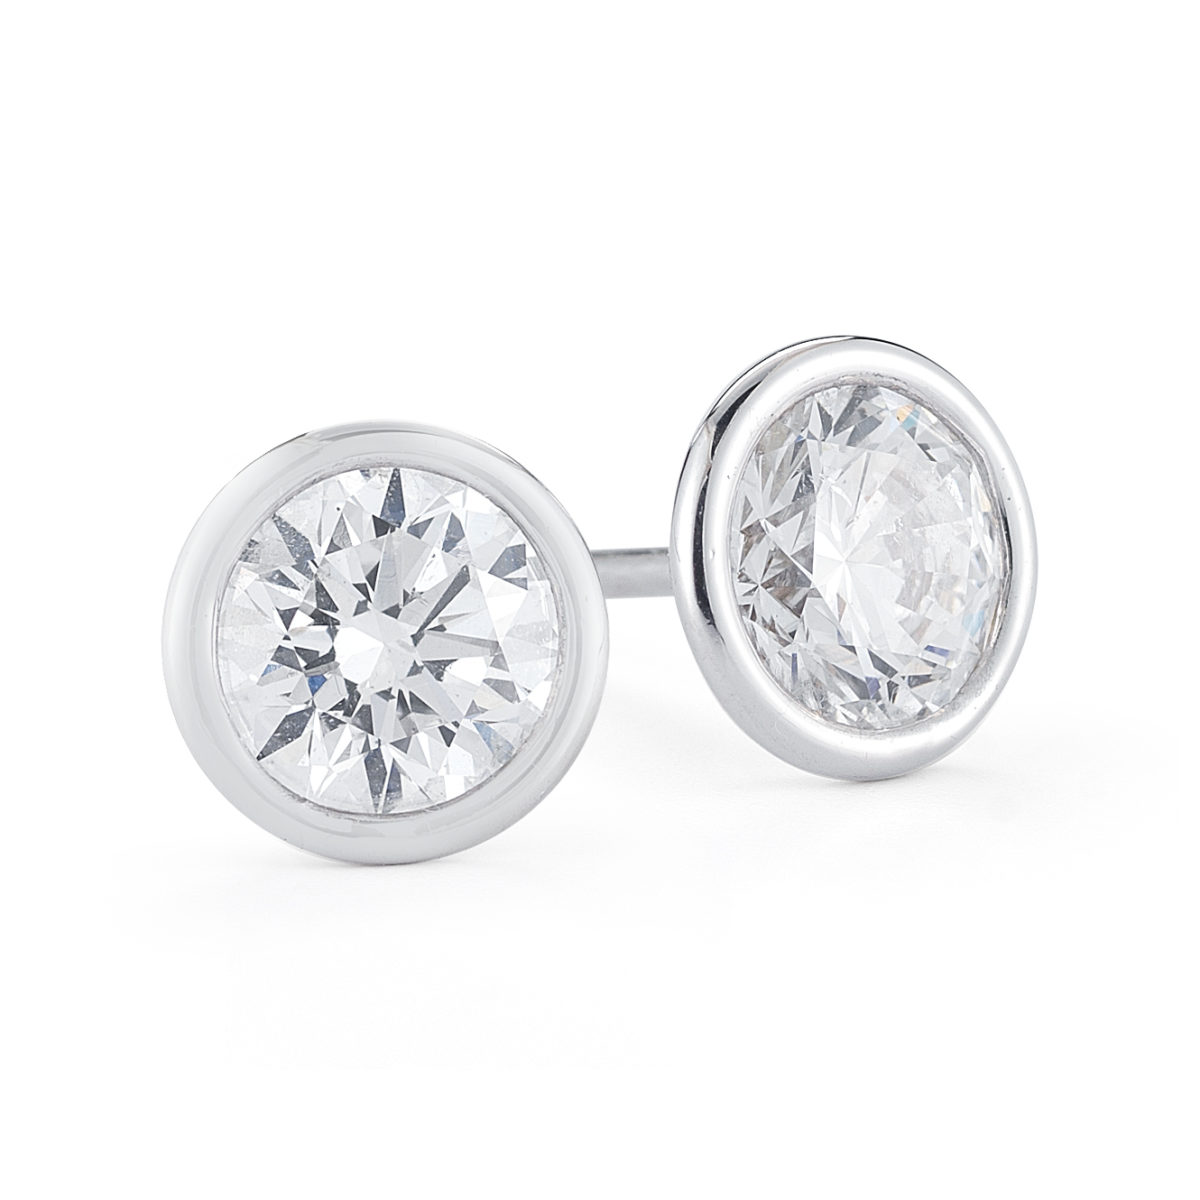 jewelry studs rochic persp stud products small set earrings kw fine bezel large